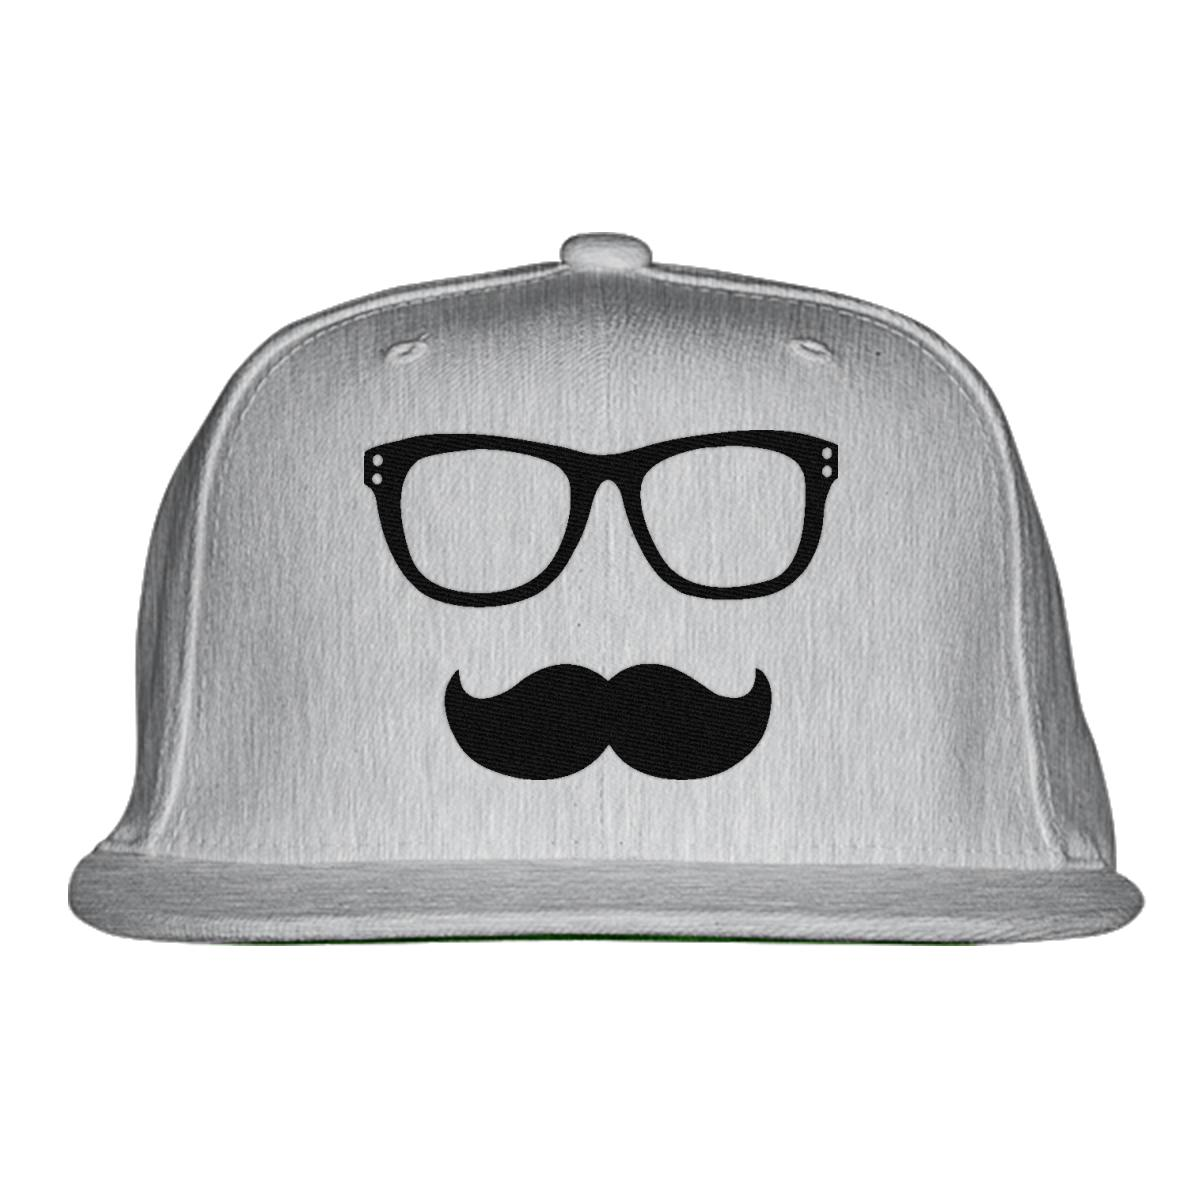 Nerd snapback hat embroidered jpg 1200x1200 Nerd with hat 904d4b941e4e